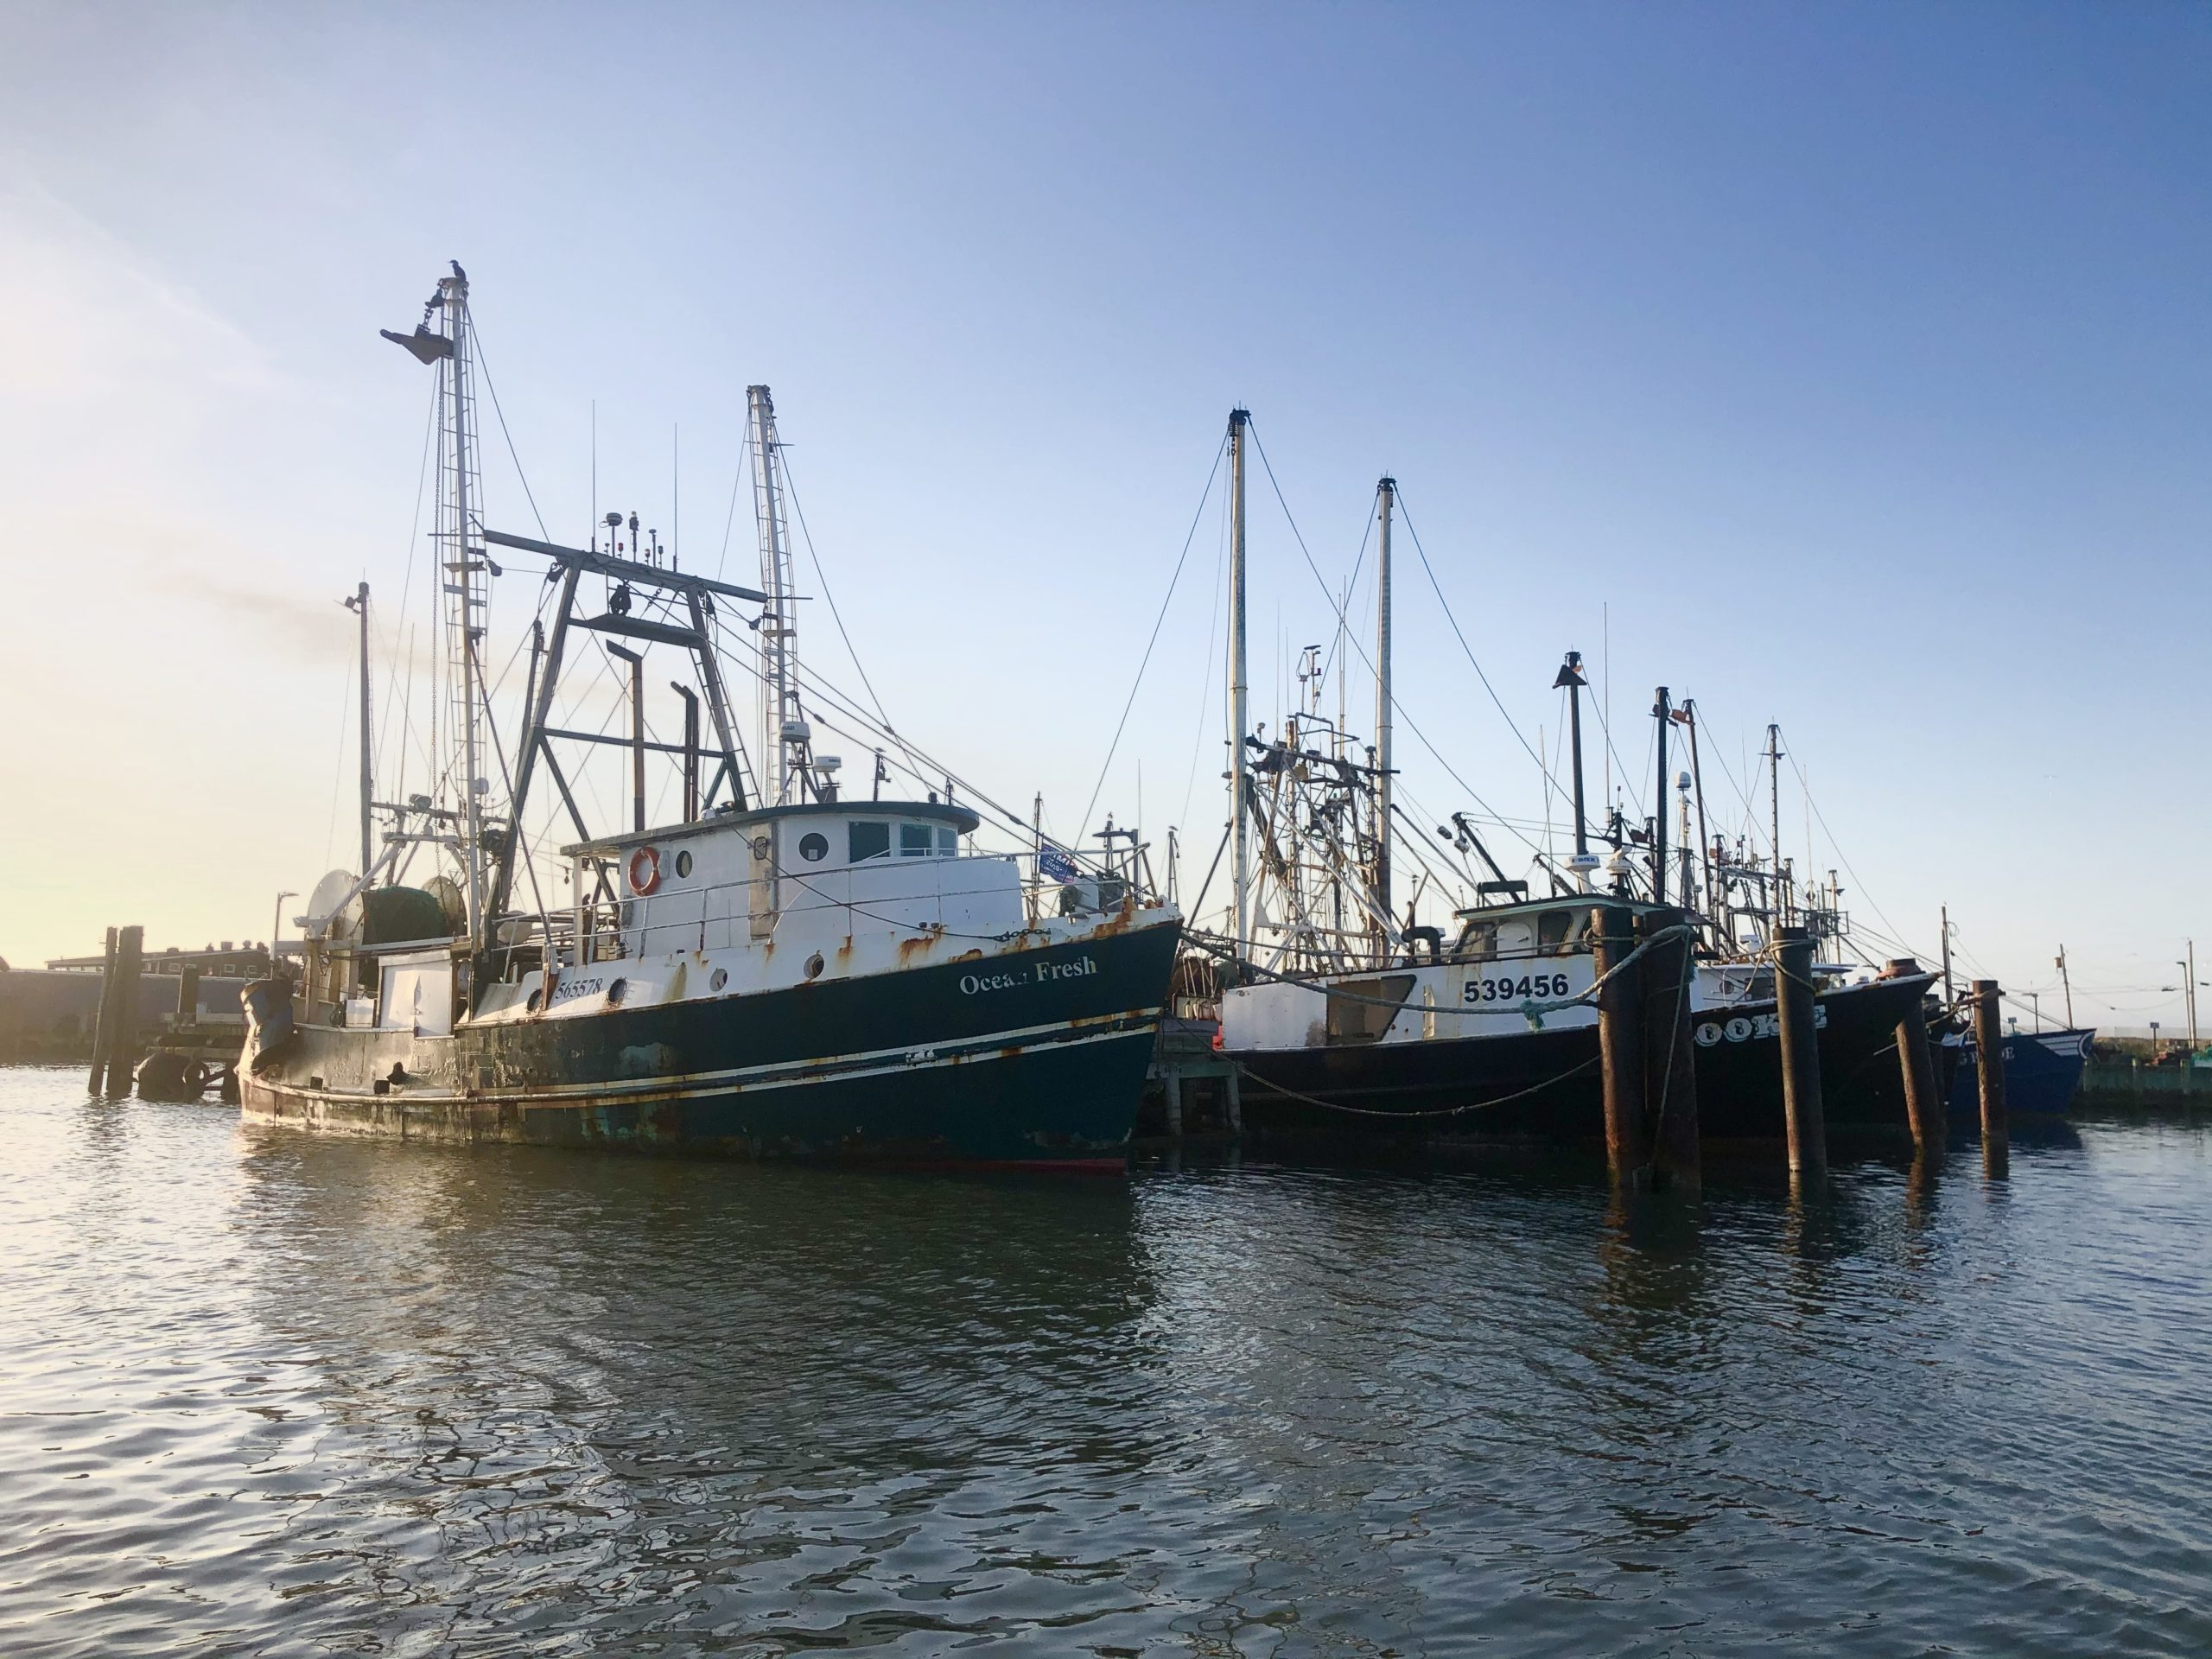 Commercial fishing fleets were hit hard by a collapse in market prices in the early days of the coronavirus epidemic. Prices have rebounded and more fishermen have diversified their outlets for selling their catch.